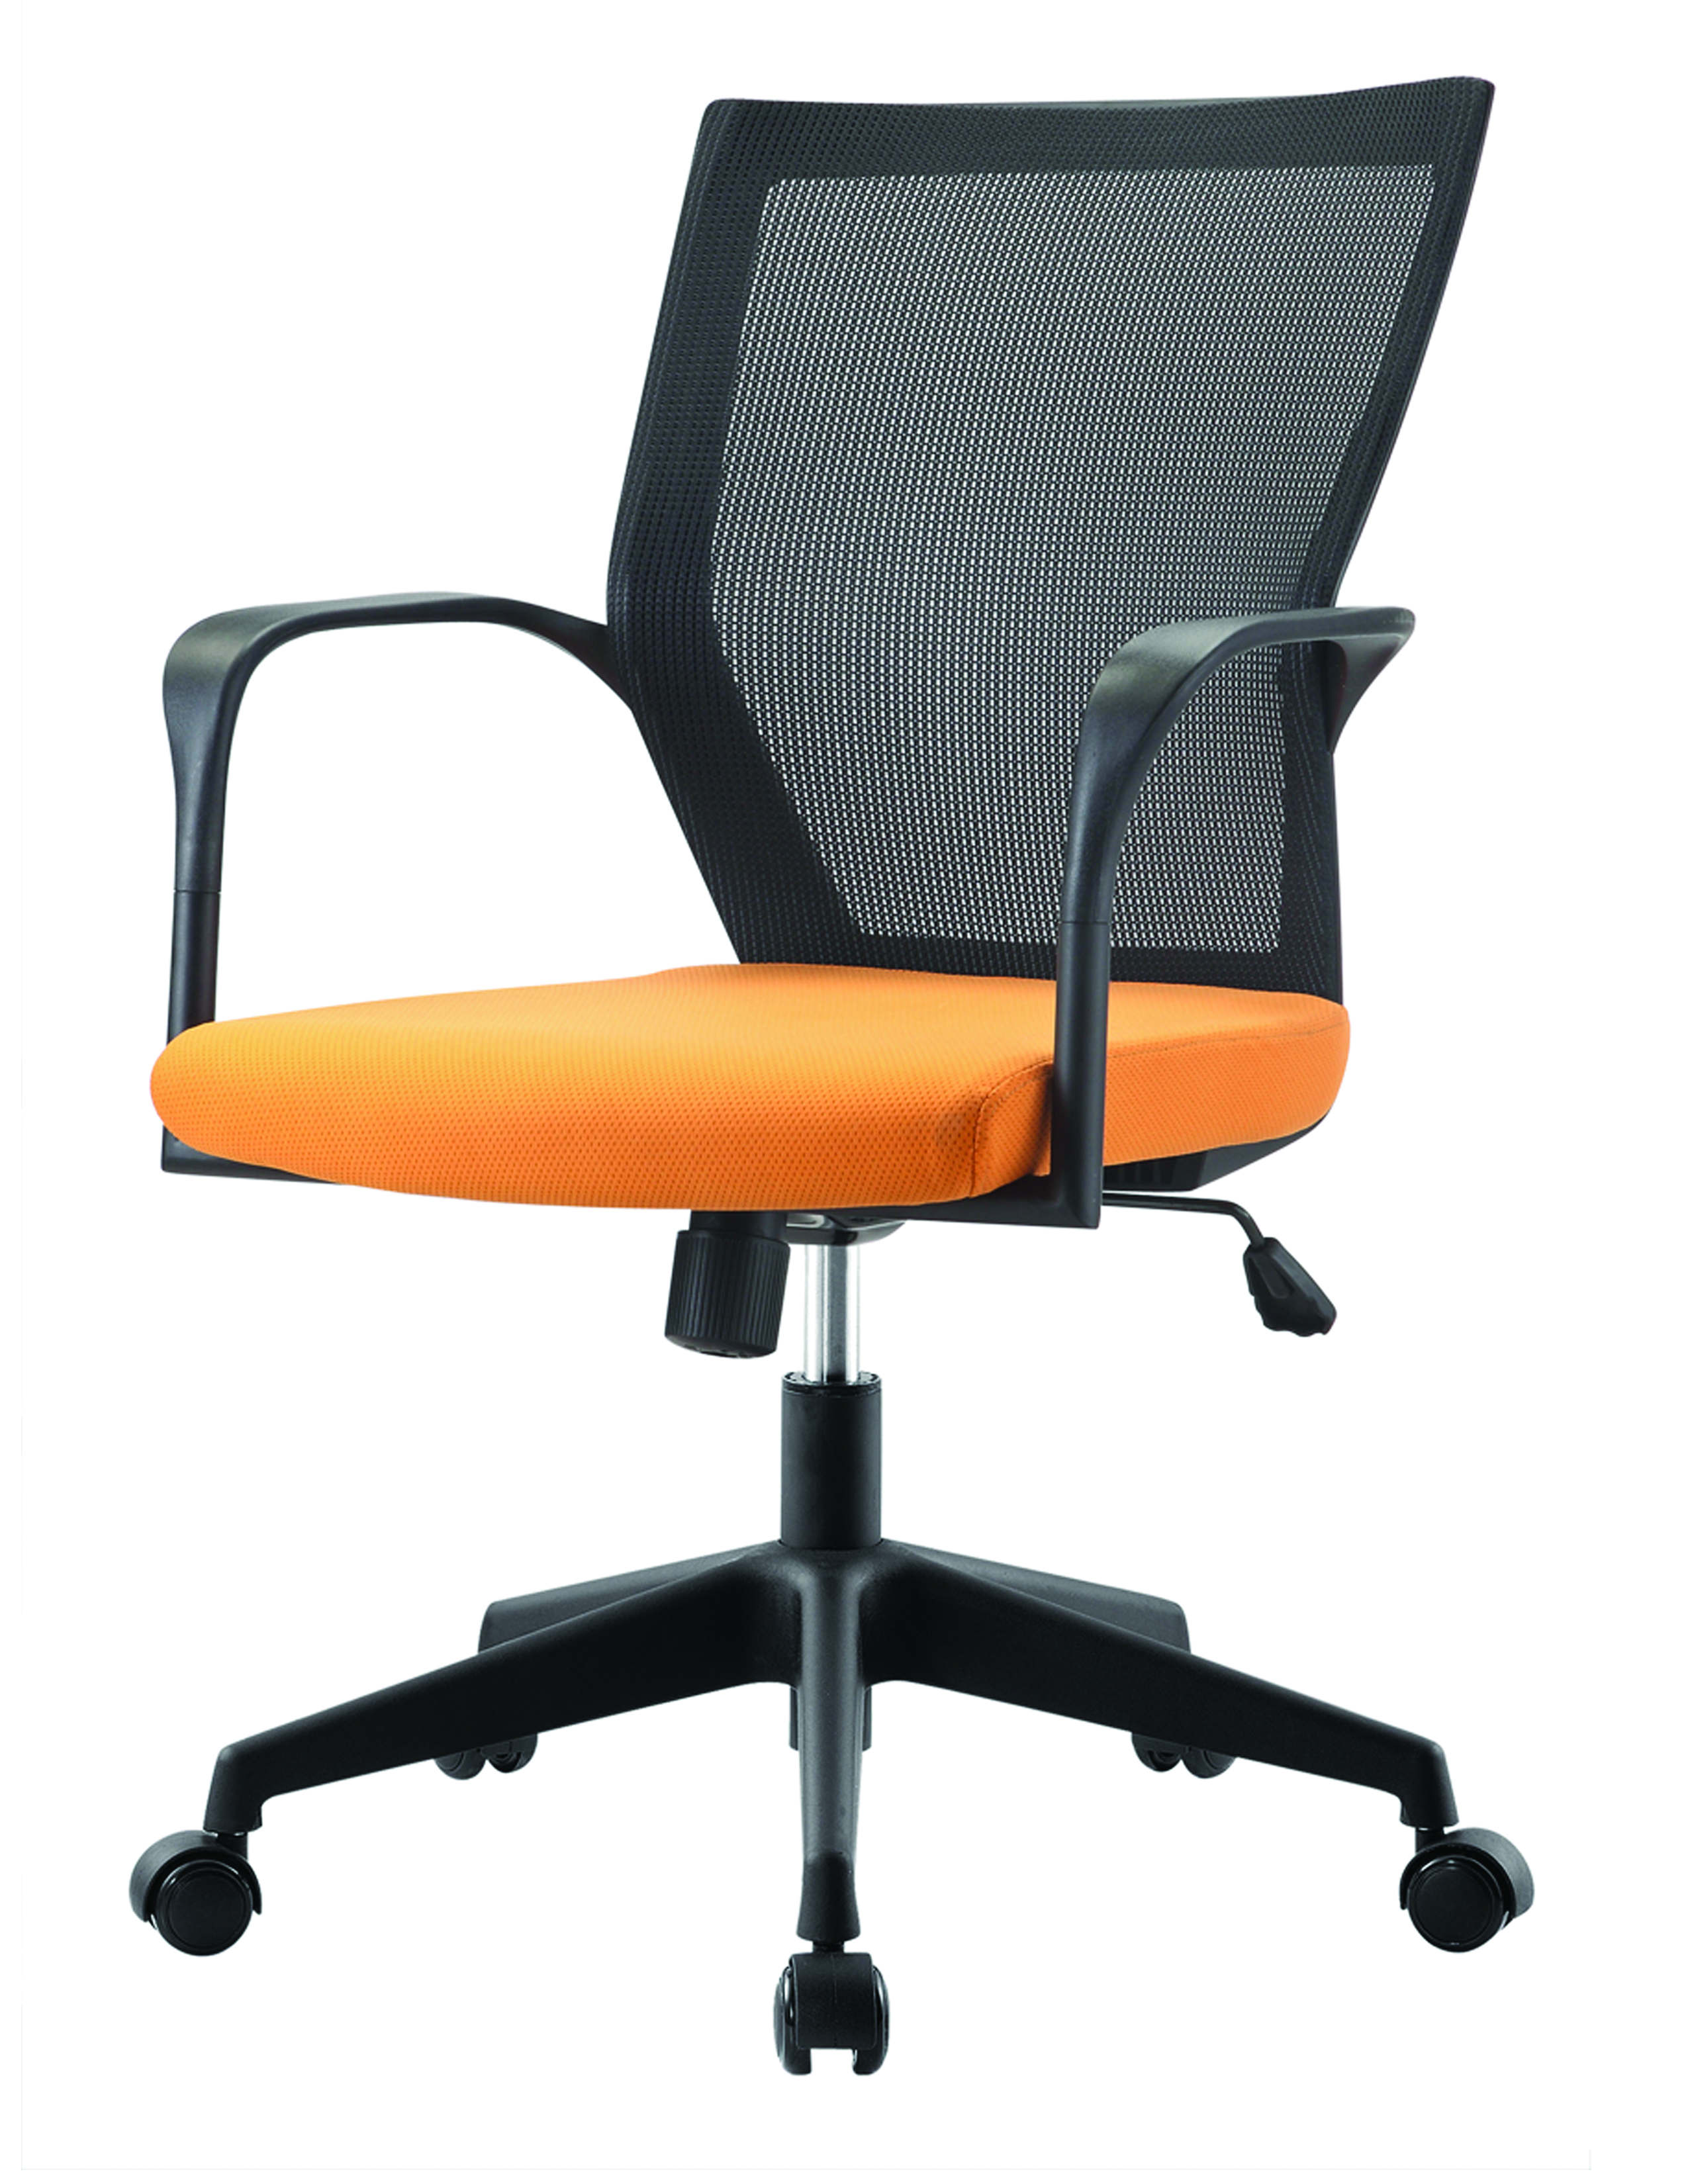 pastel furniture bozano office chair in orange upholstery bz 164 dn